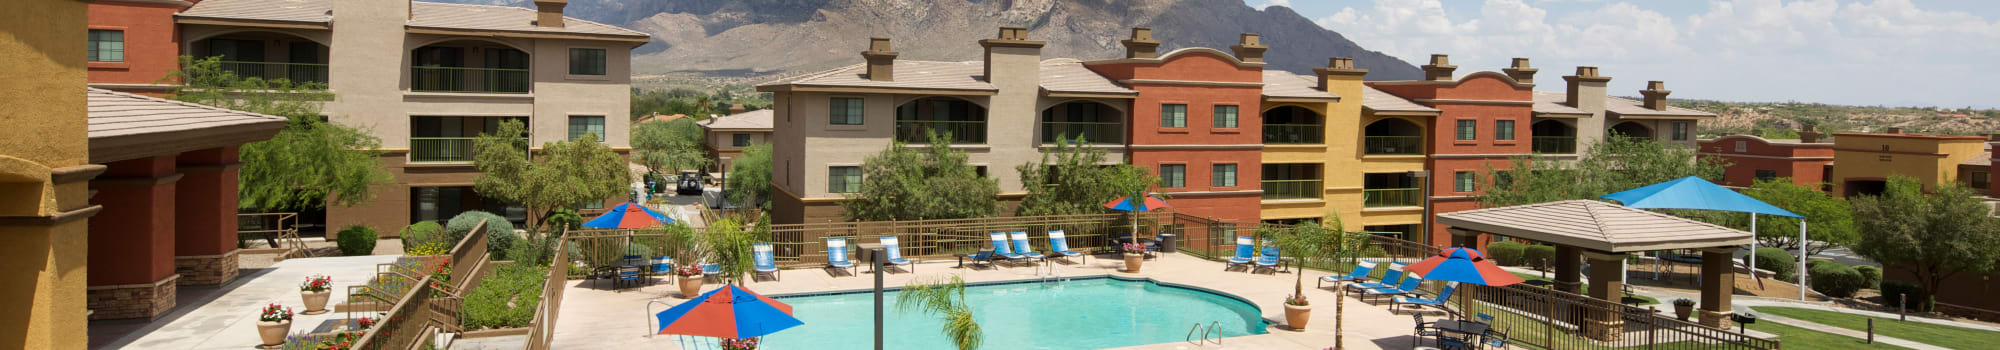 Amenities at Oro Vista Apartments in Oro Valley, Arizona